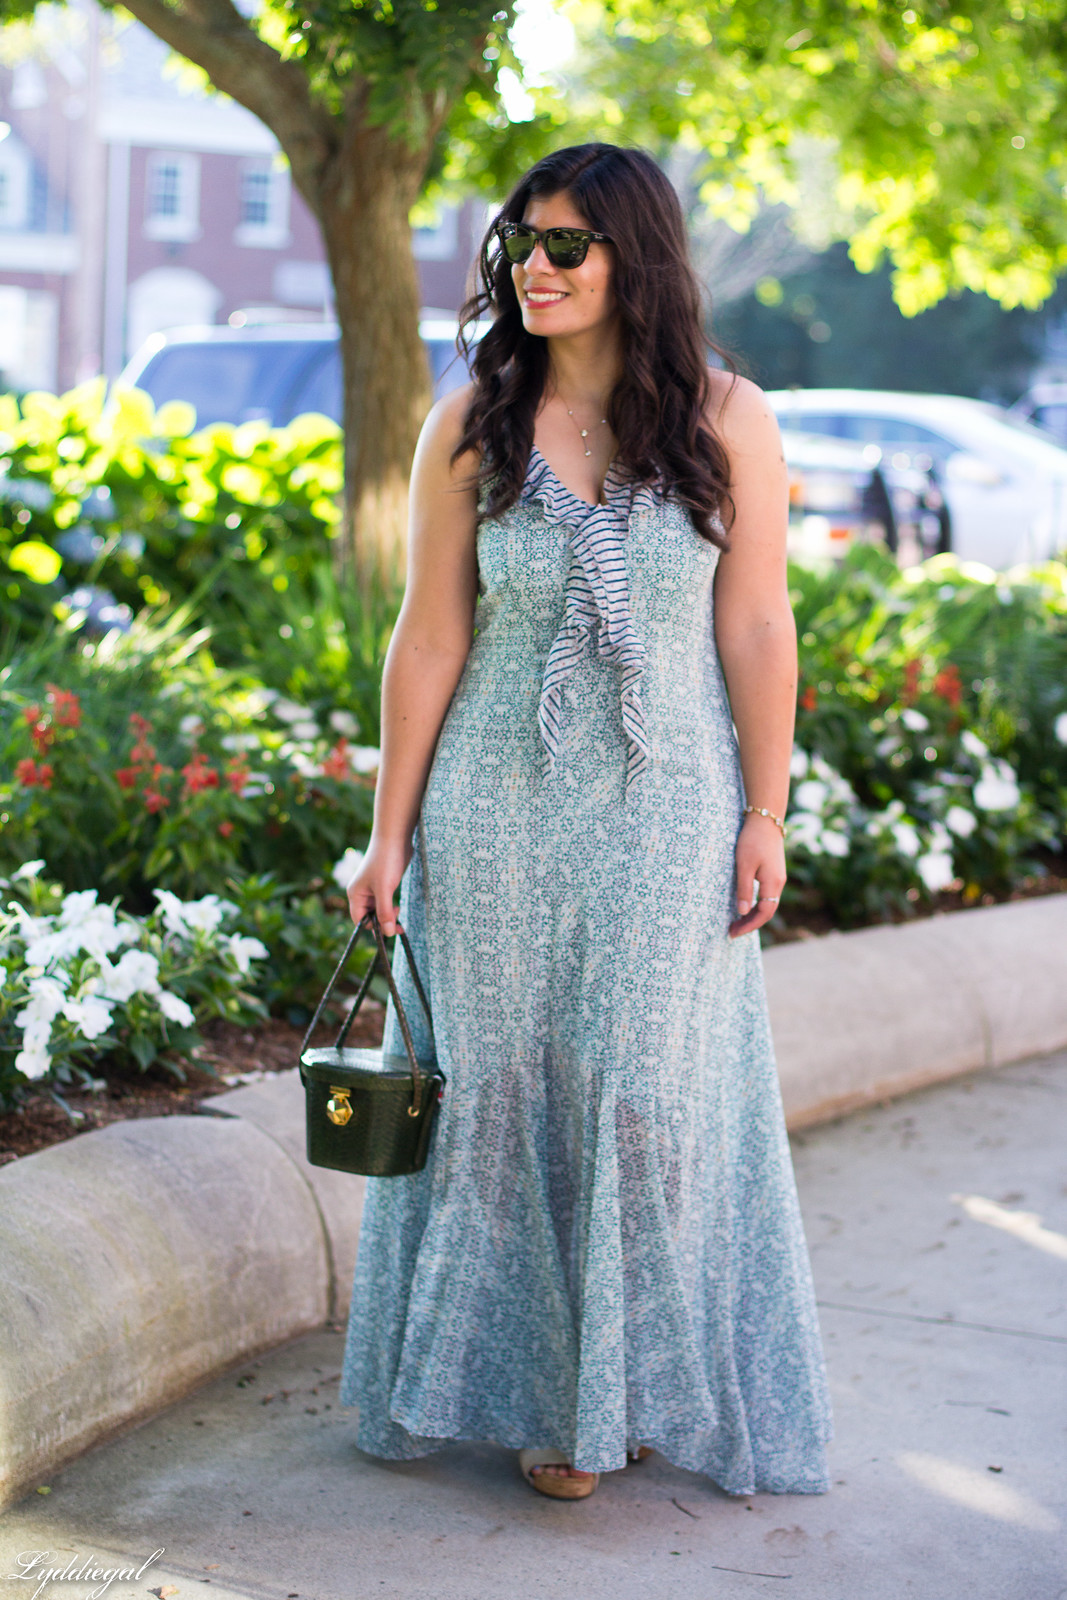 floral print maxi dress, green snakeskin box bag-8.jpg